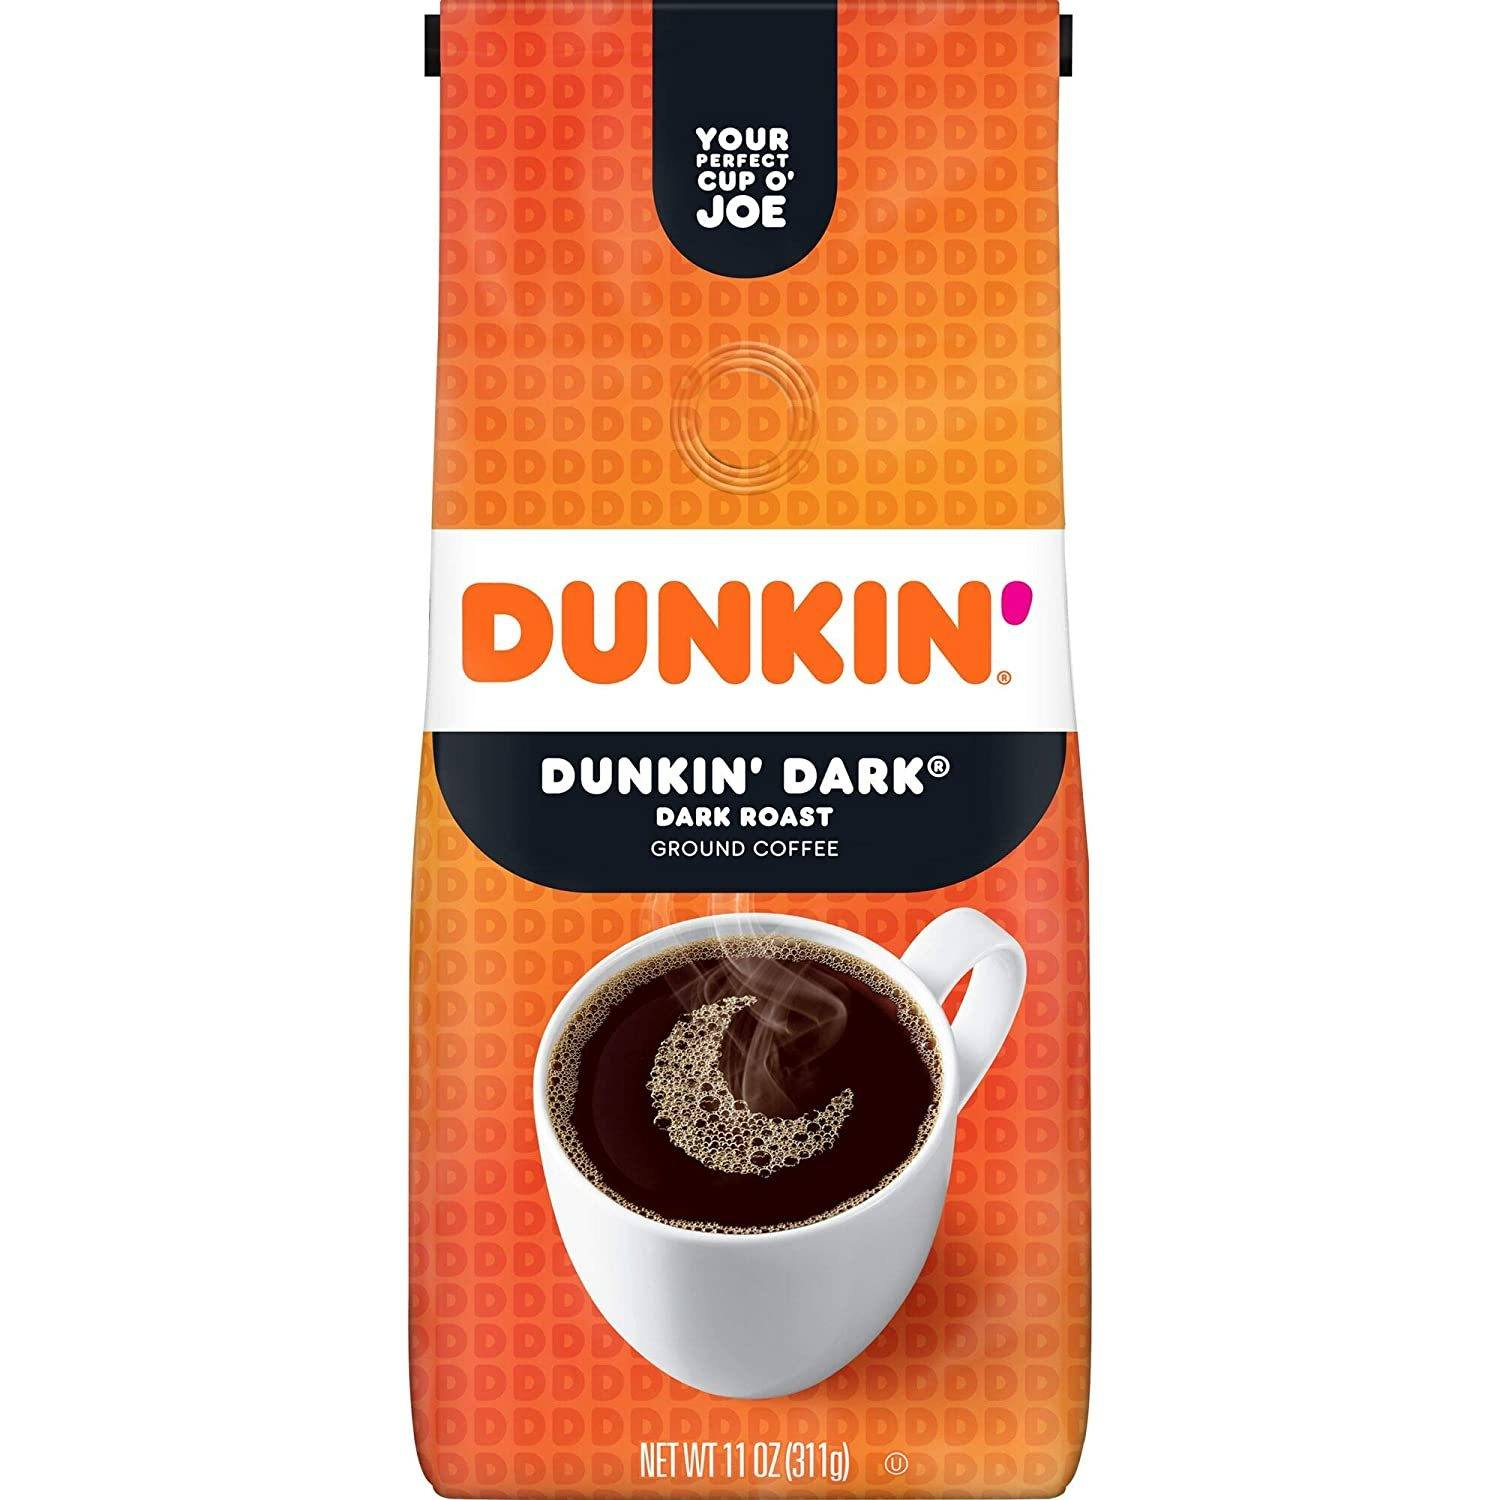 Dunkin' Original Blend Medium Roast Ground Coffee